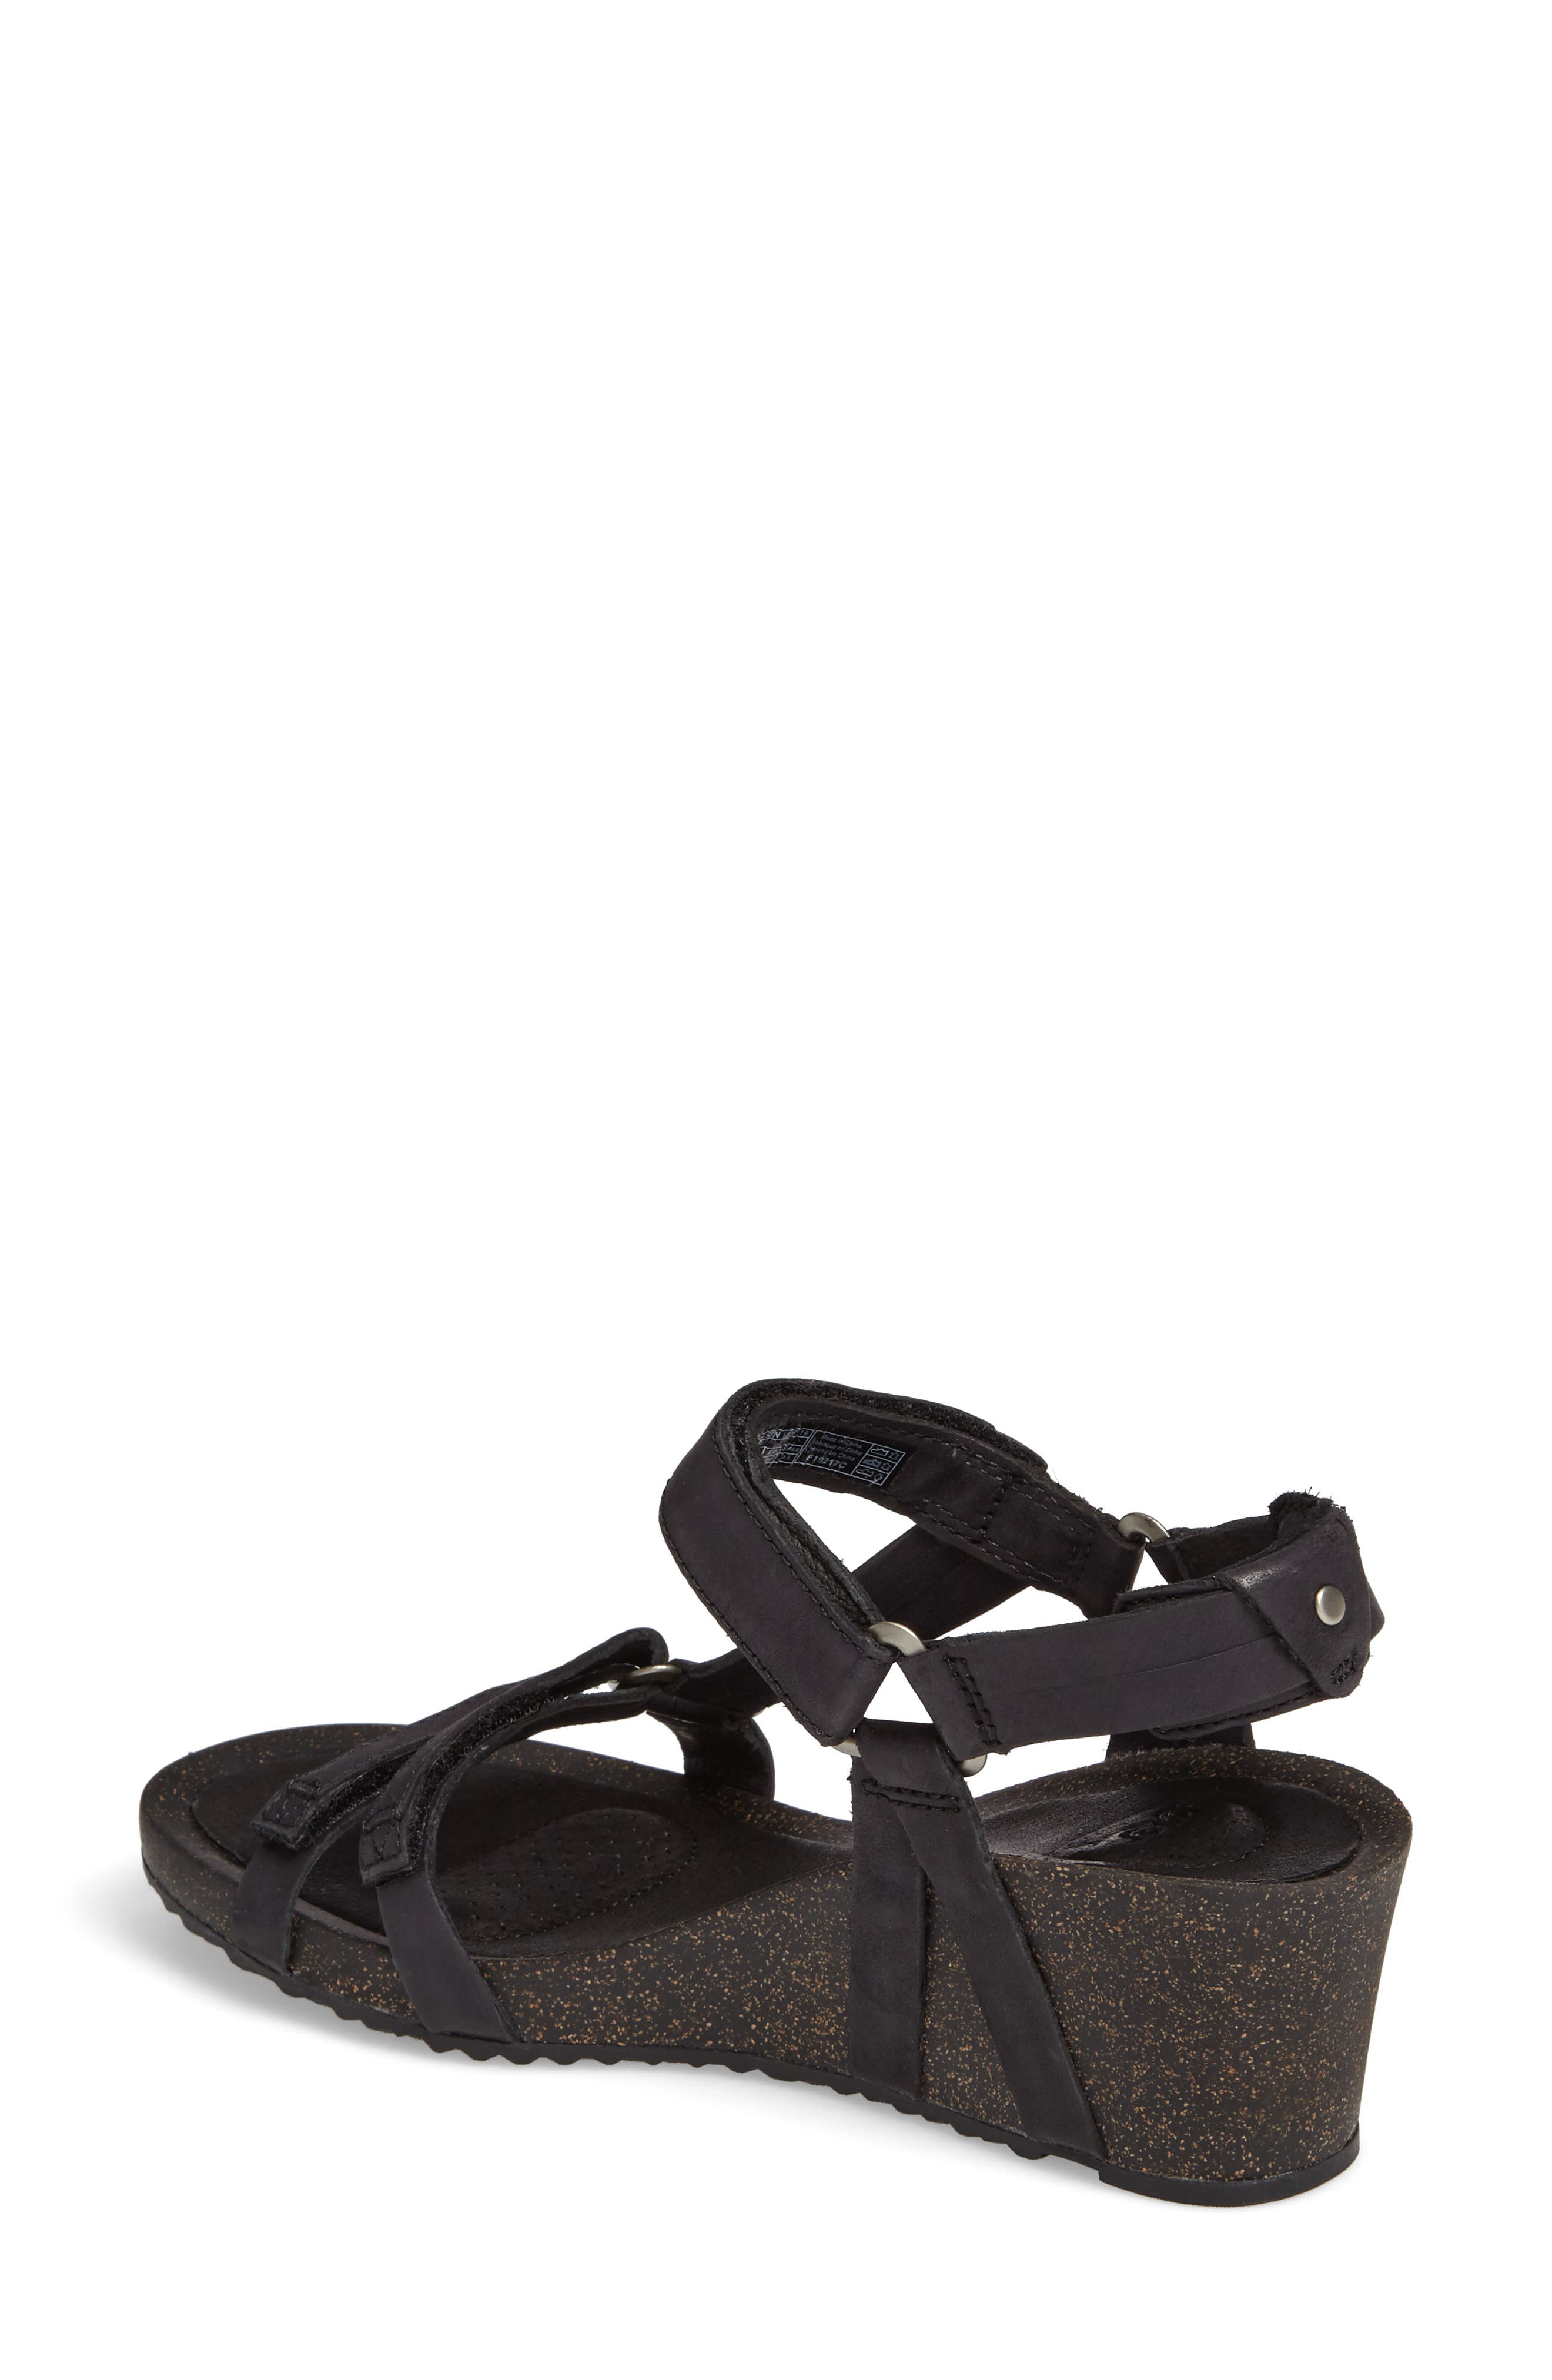 Ysidro Wedge Sandal,                             Alternate thumbnail 2, color,                             002